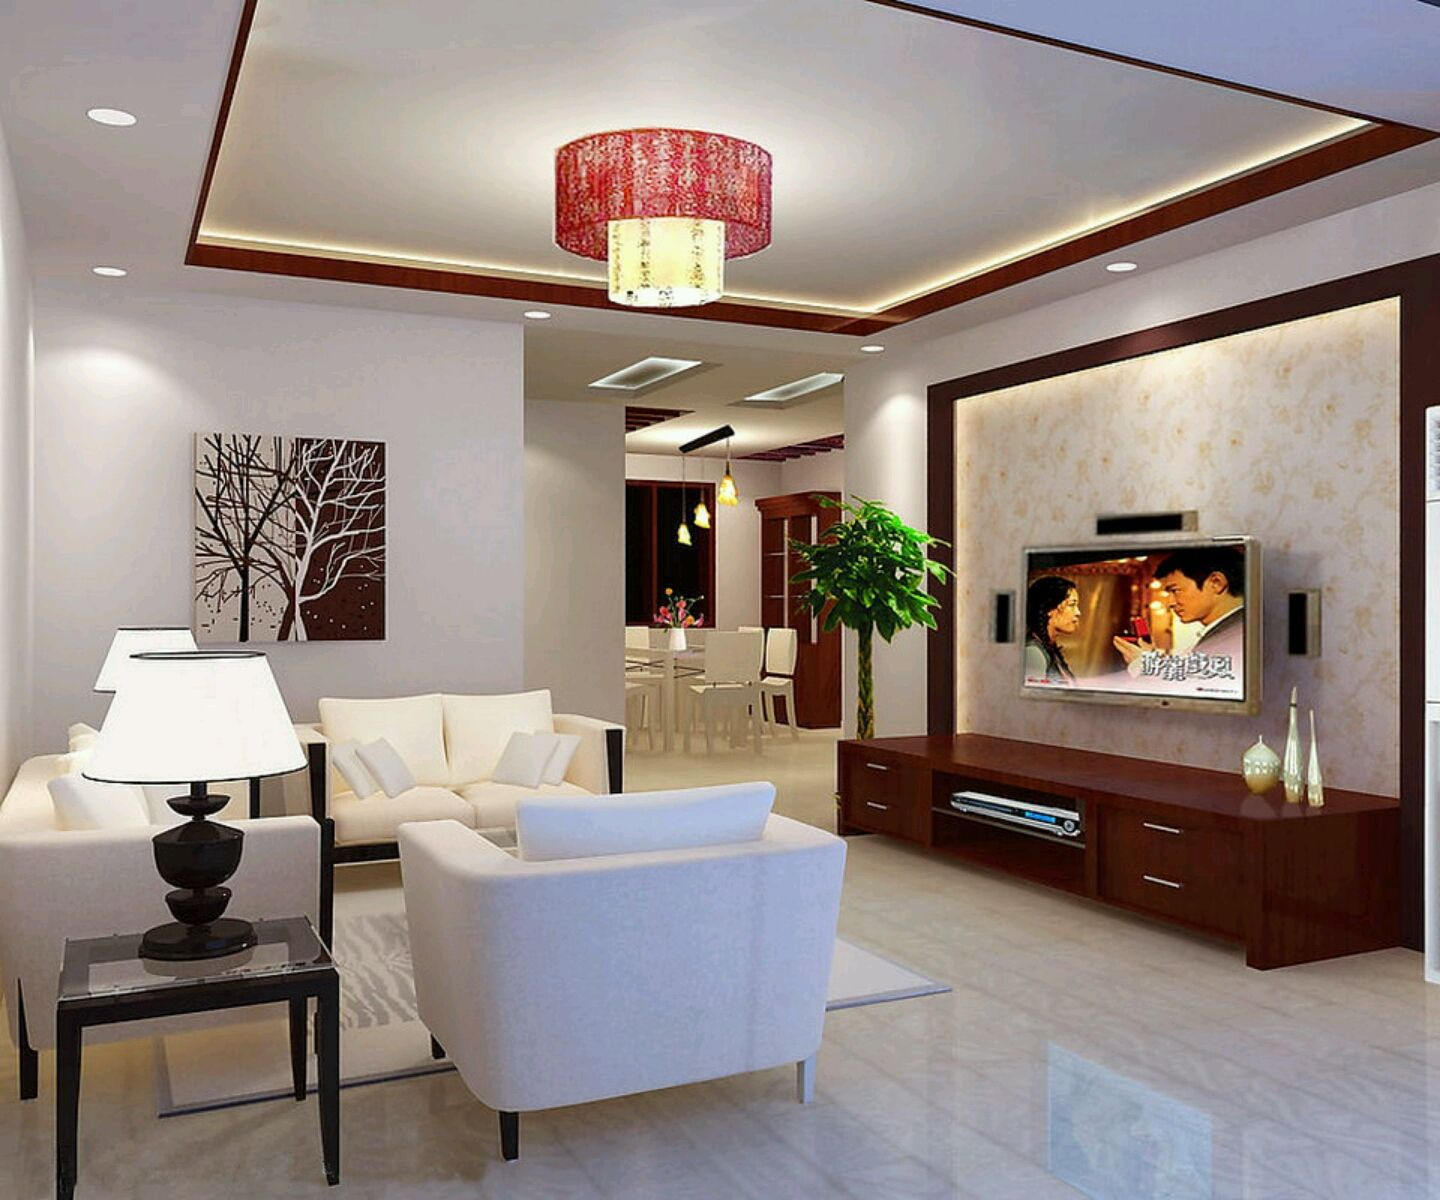 Contemporary Ceiling Design With Red Outline Simple Cei